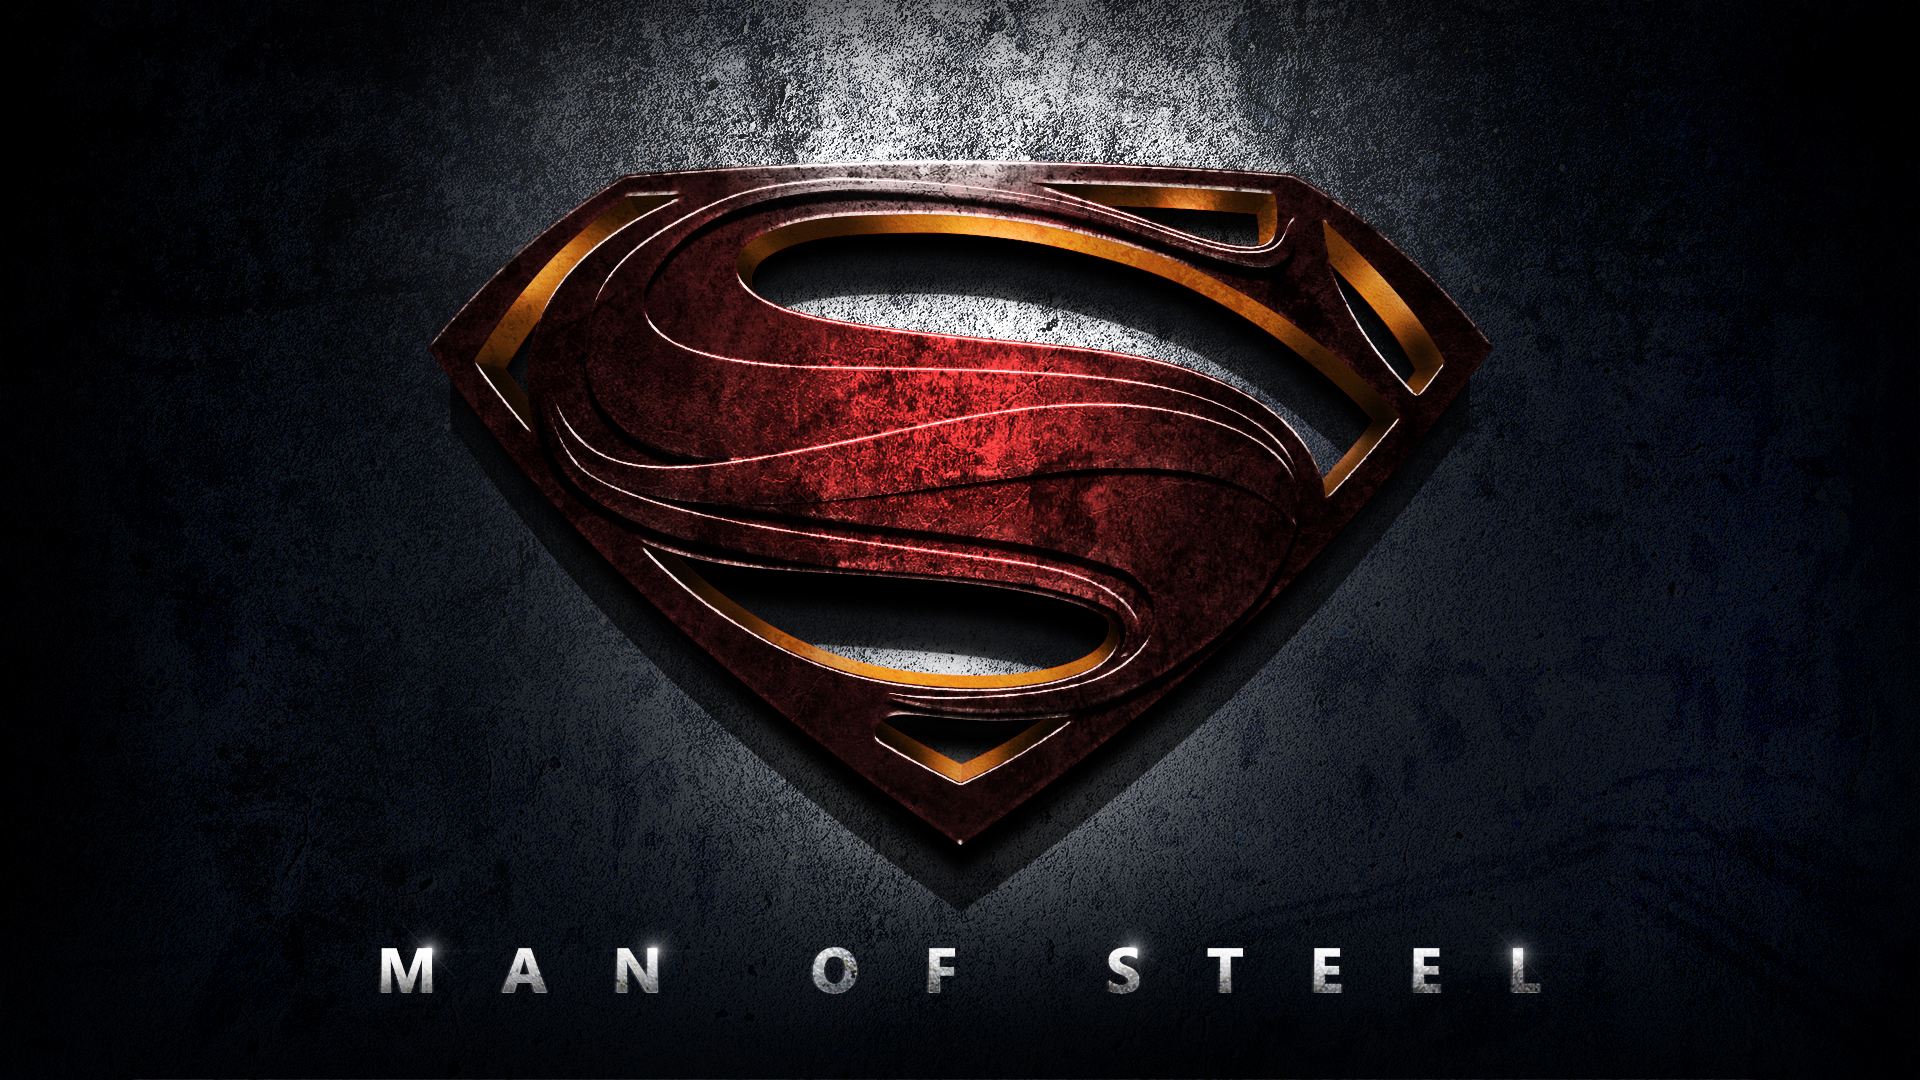 man of steel wallpaper by symplearts d68zqi8 1920x1080